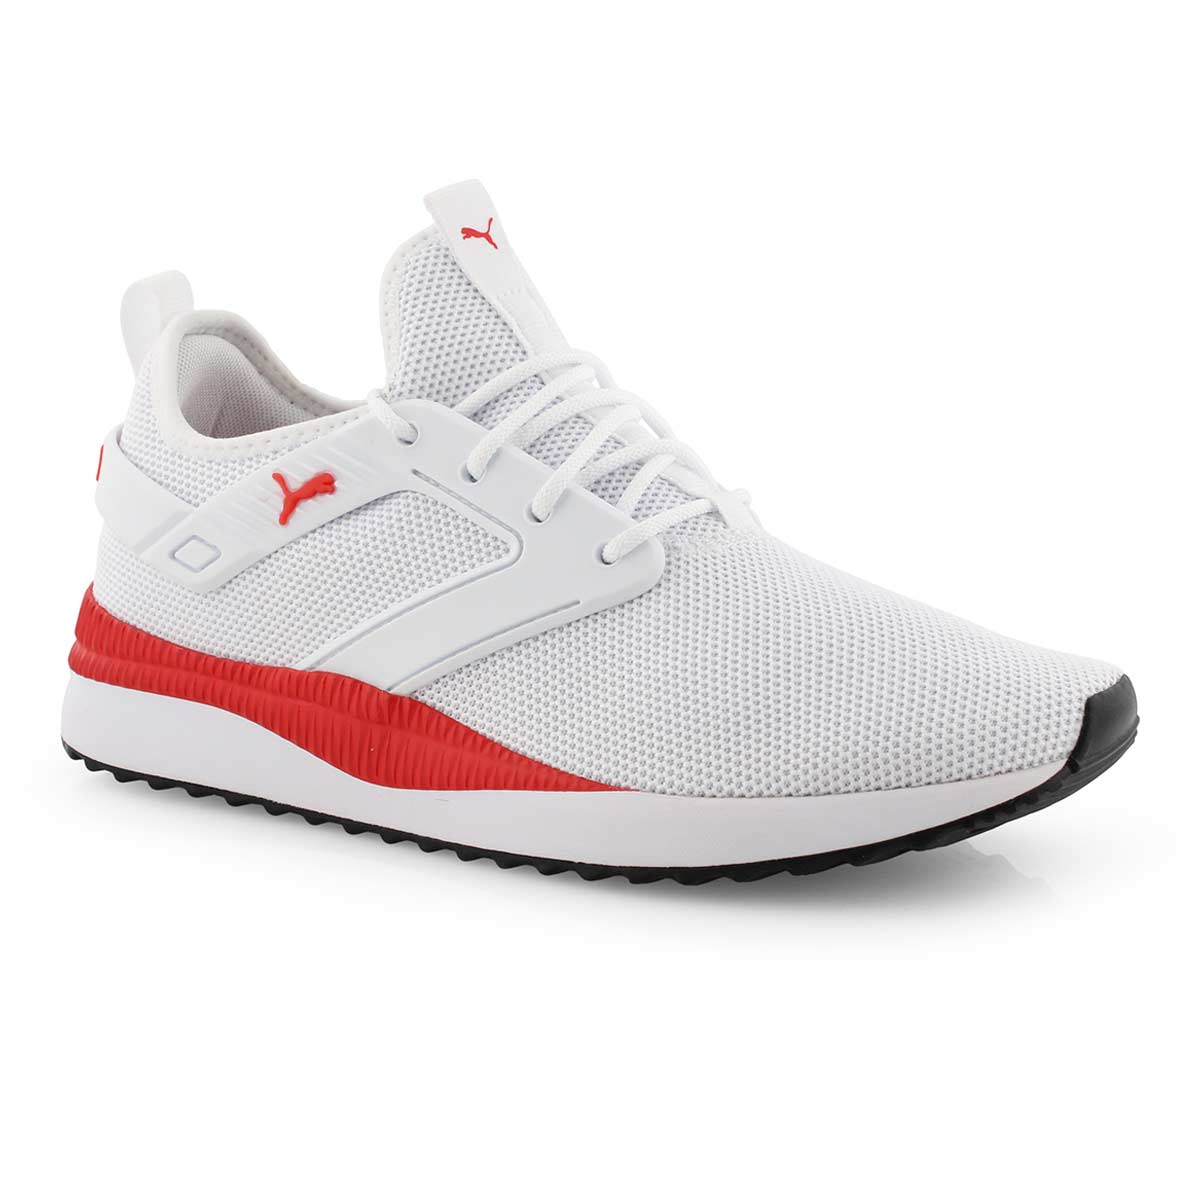 Mns Pacer Next Excel wht/red laceup snkr